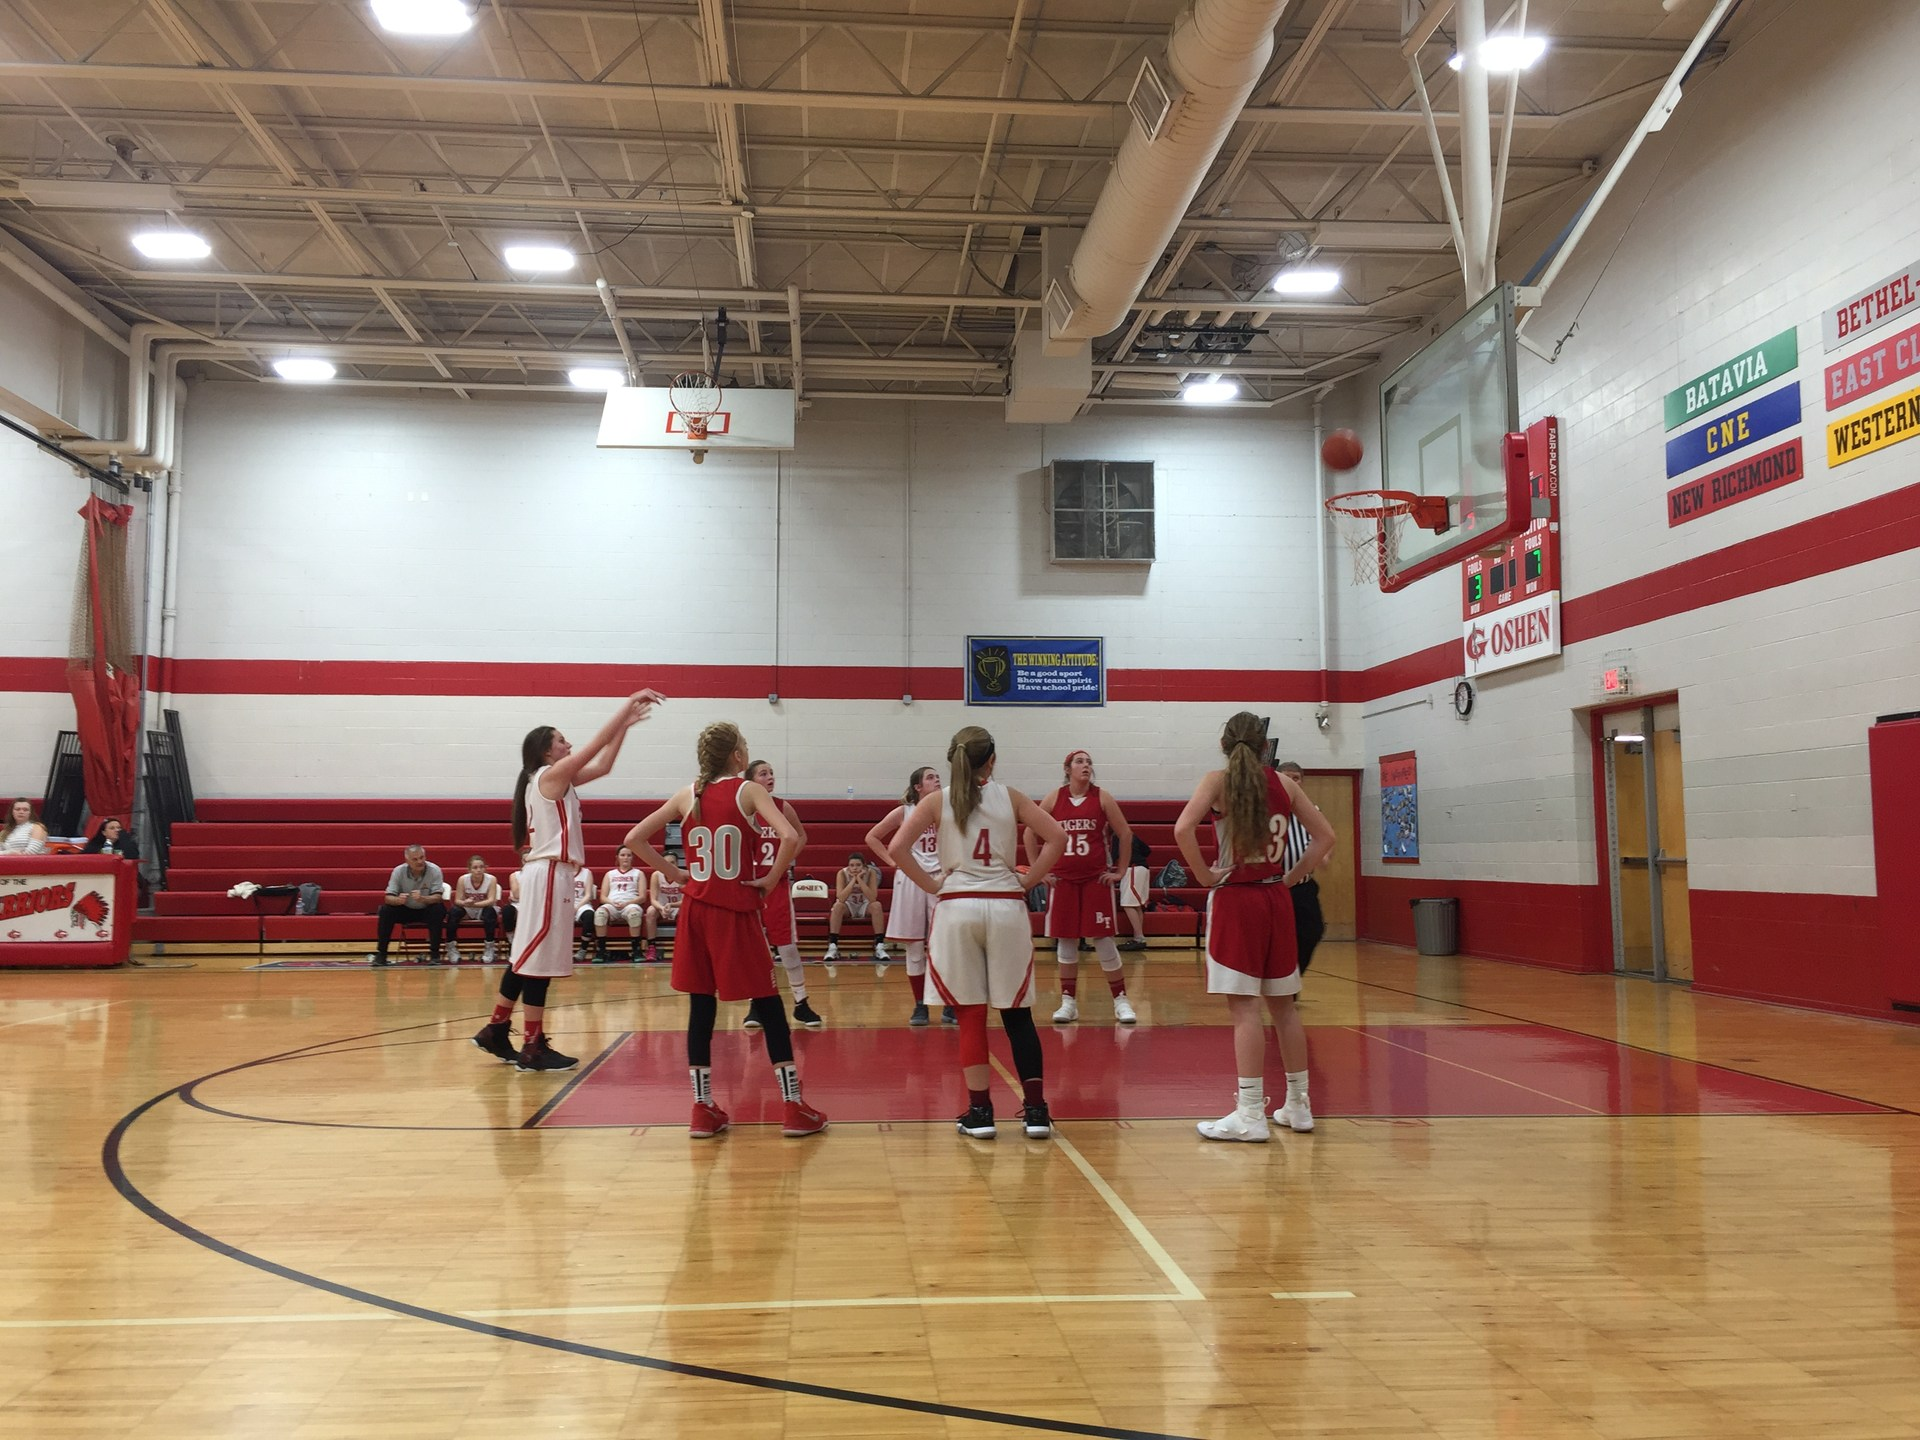 8th grader Madison Hornsby shooting a free throw